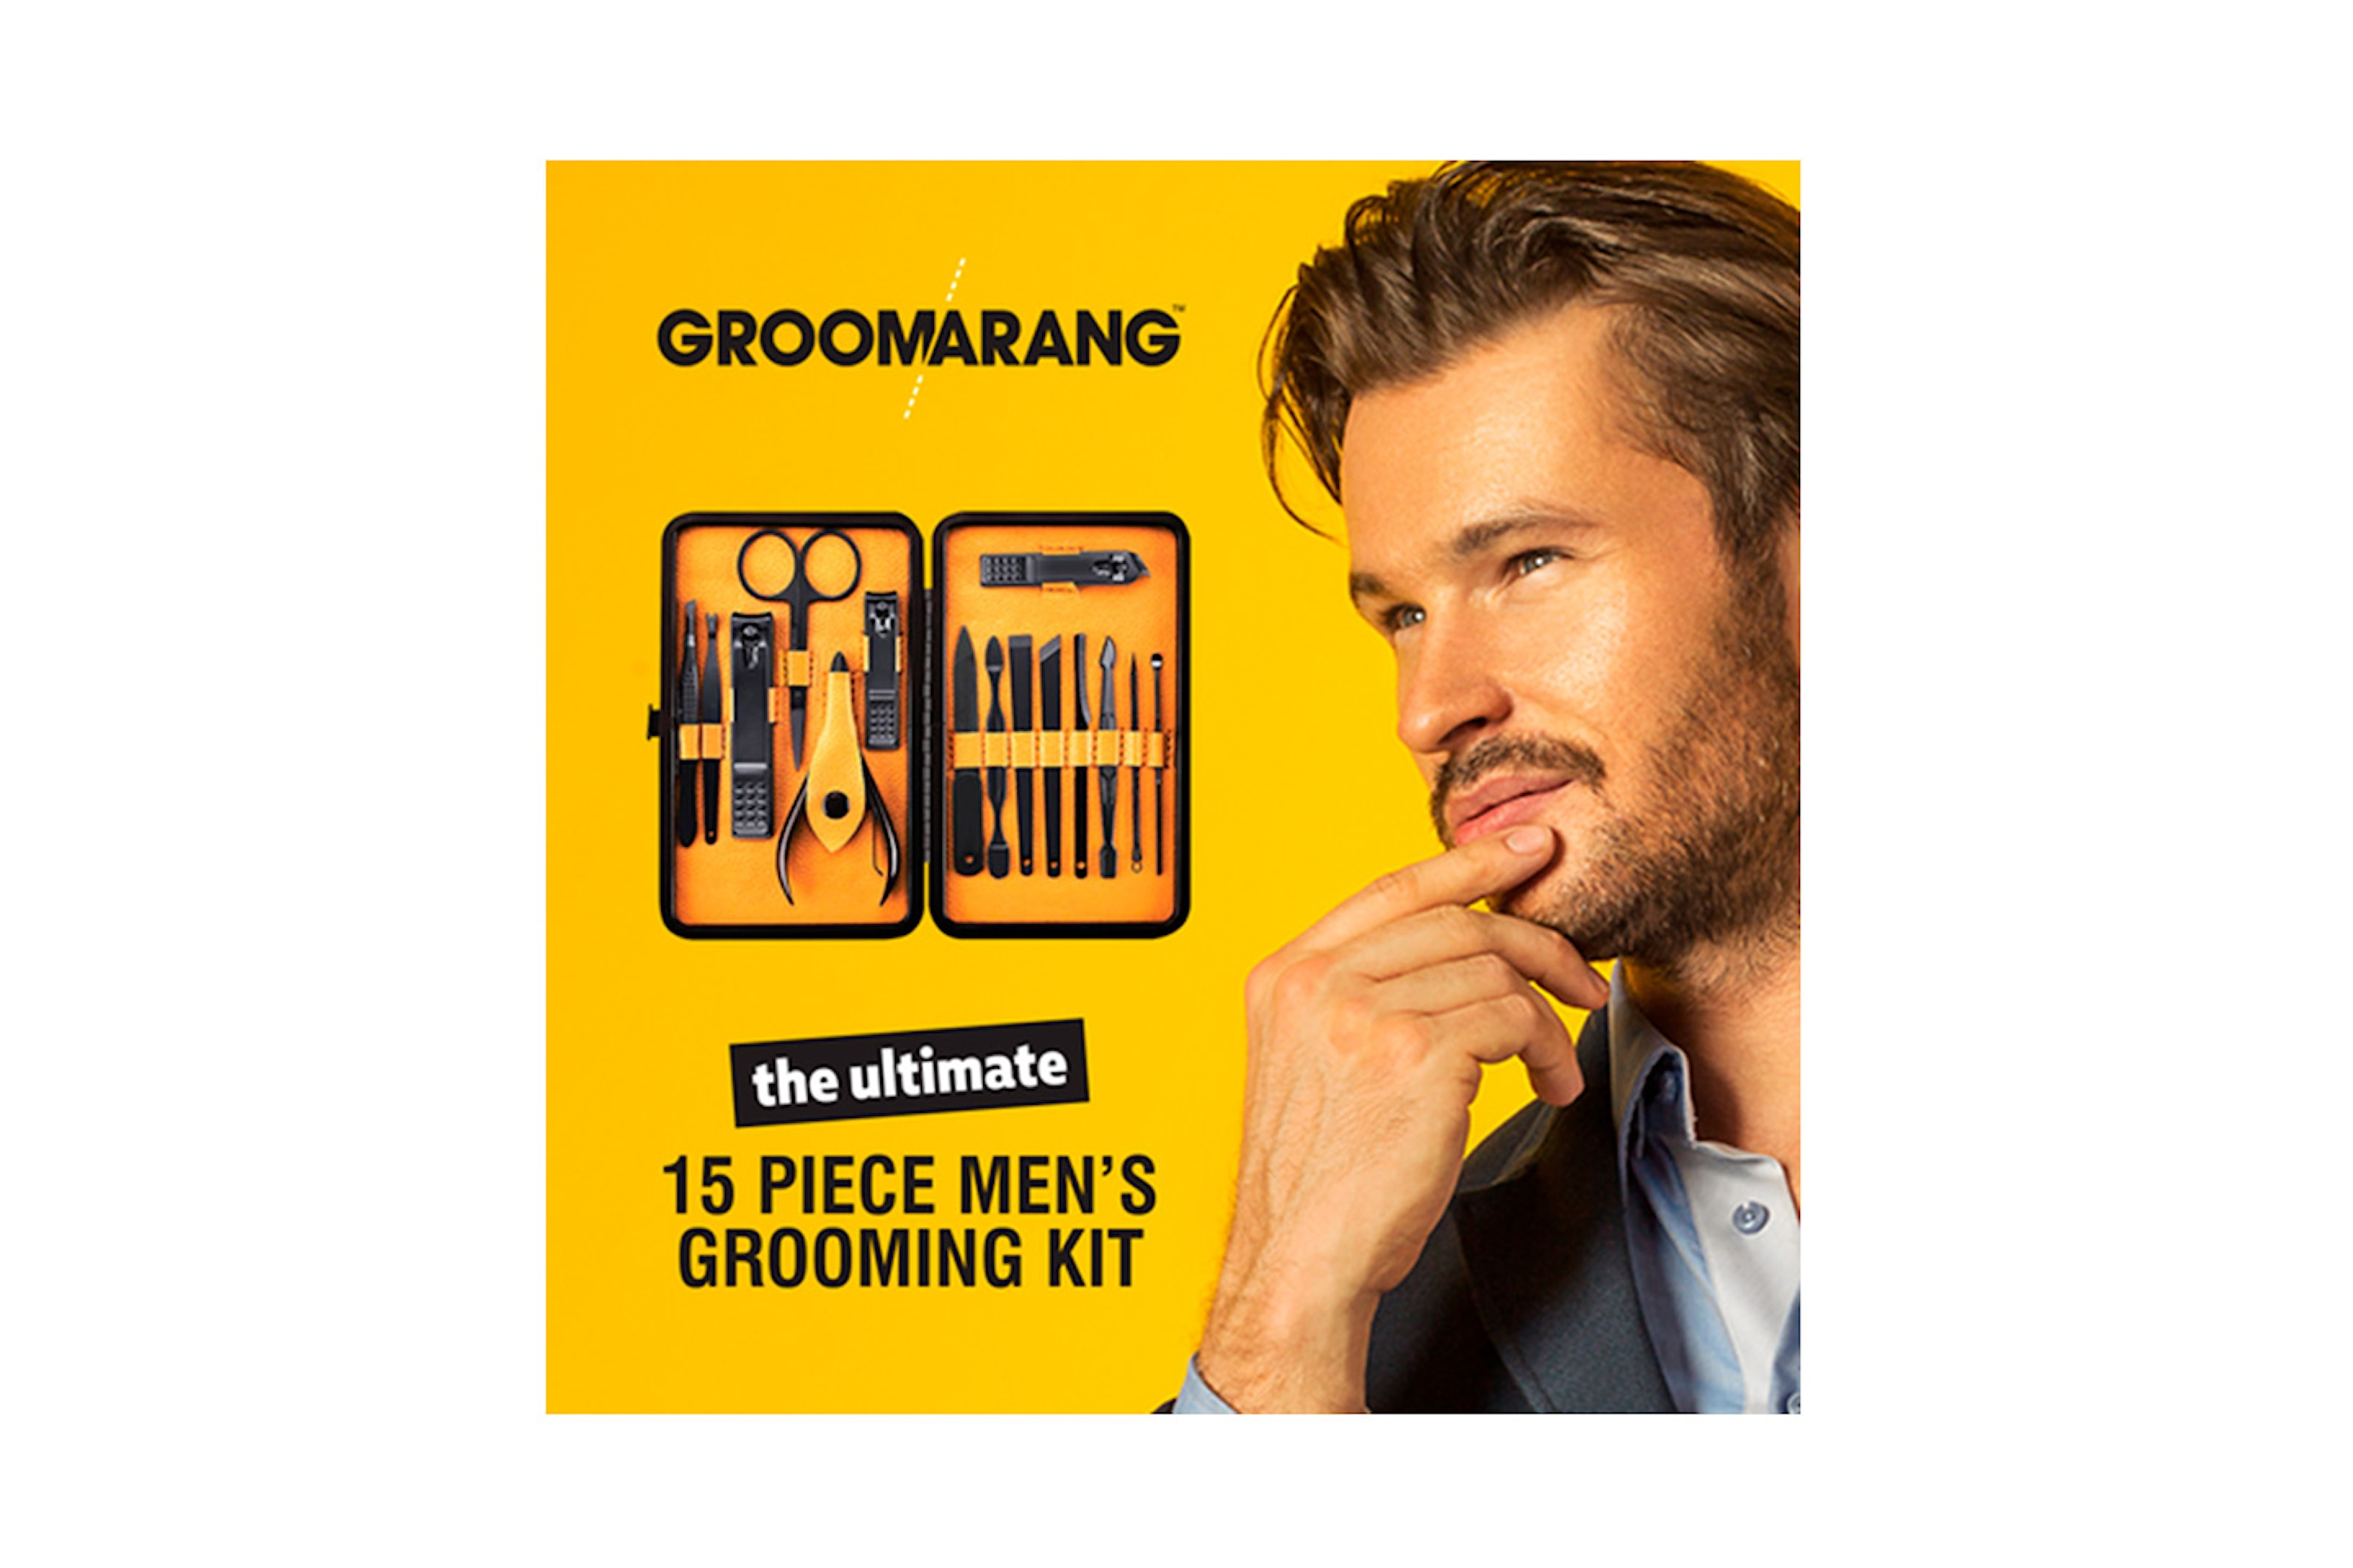 15-pack grooming kit for menn